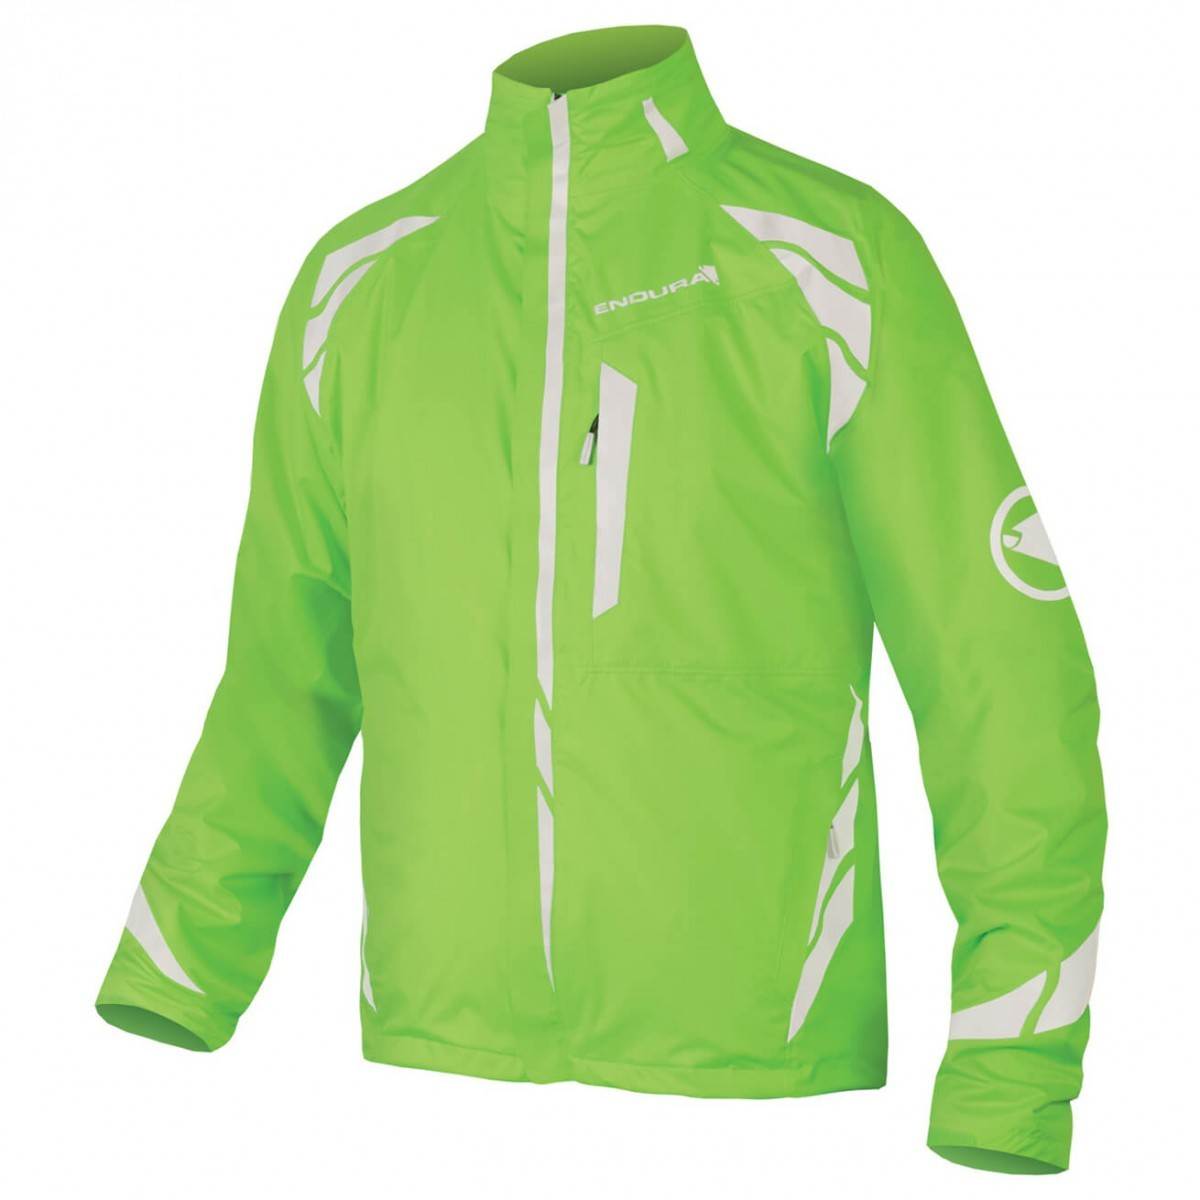 Endura エンデューラ Luminite 4 in 1 Jacket (Hivizgreen)